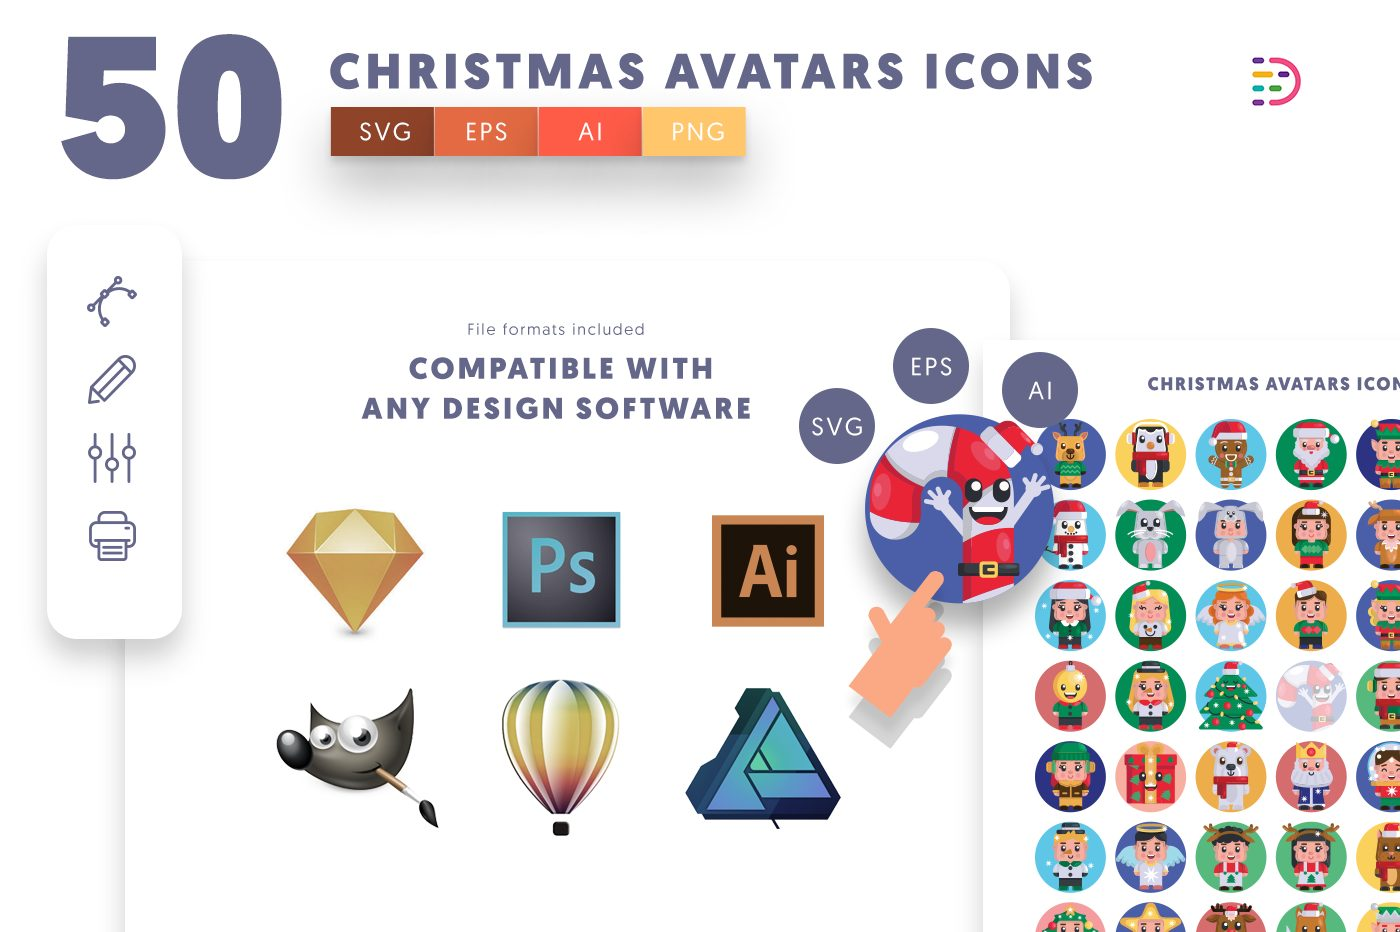 full vector 50 Christmas Avatars Icons EPS, SVG, PNG